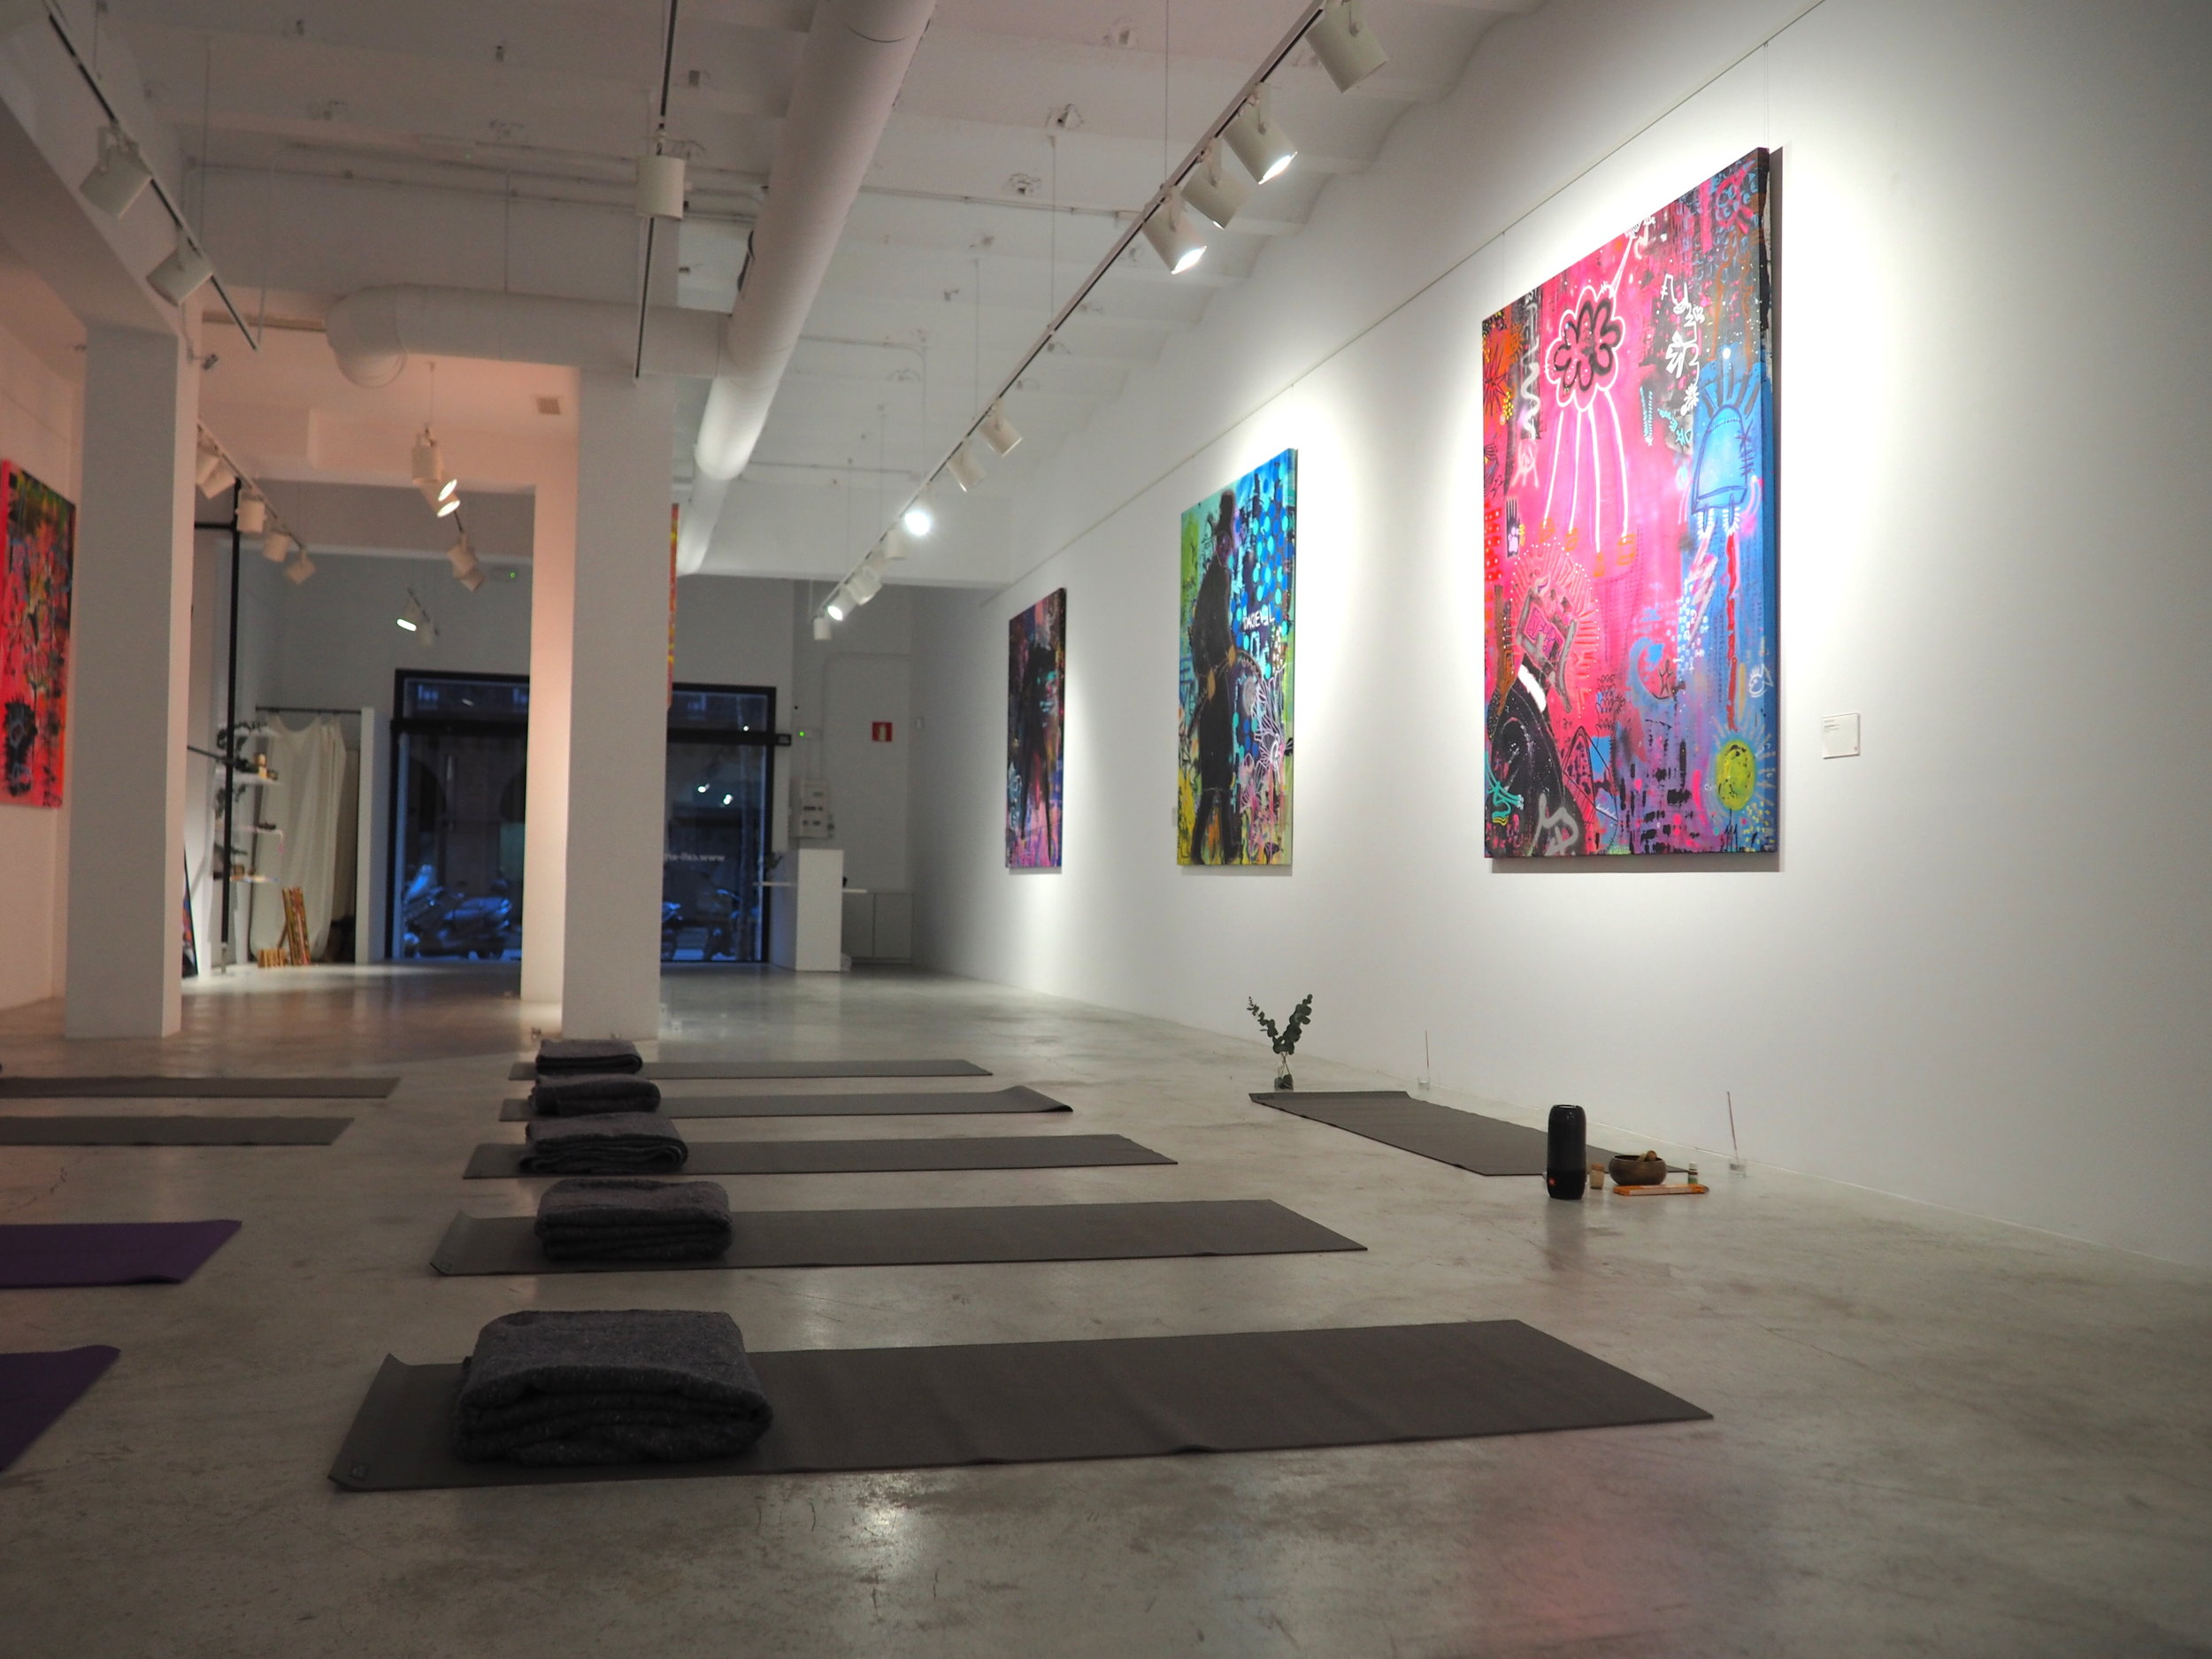 Rise & Flow Yoga at Art Gallery - Vinyasa Yoga - Meditation - Healthy breakfastCome and enjoy a dynamic & deep Vinyasa yoga session followed by a meditation to wake up your inner creativity, at Cali Gallery, a street art gallery in the center of Barcelona, that will be transformed into a holistic yoga sanctuary. The session will be followed by a healthy breakfast.SATURDAY 16th FEBRUARY9.00 am to 11.30@ Cali Gallery285 CARRER ROSELLO 08037 Barcelona SpainPRICE: 25€/ PERSON(price include: yoga class, yoga mats meditation & healthy snack)